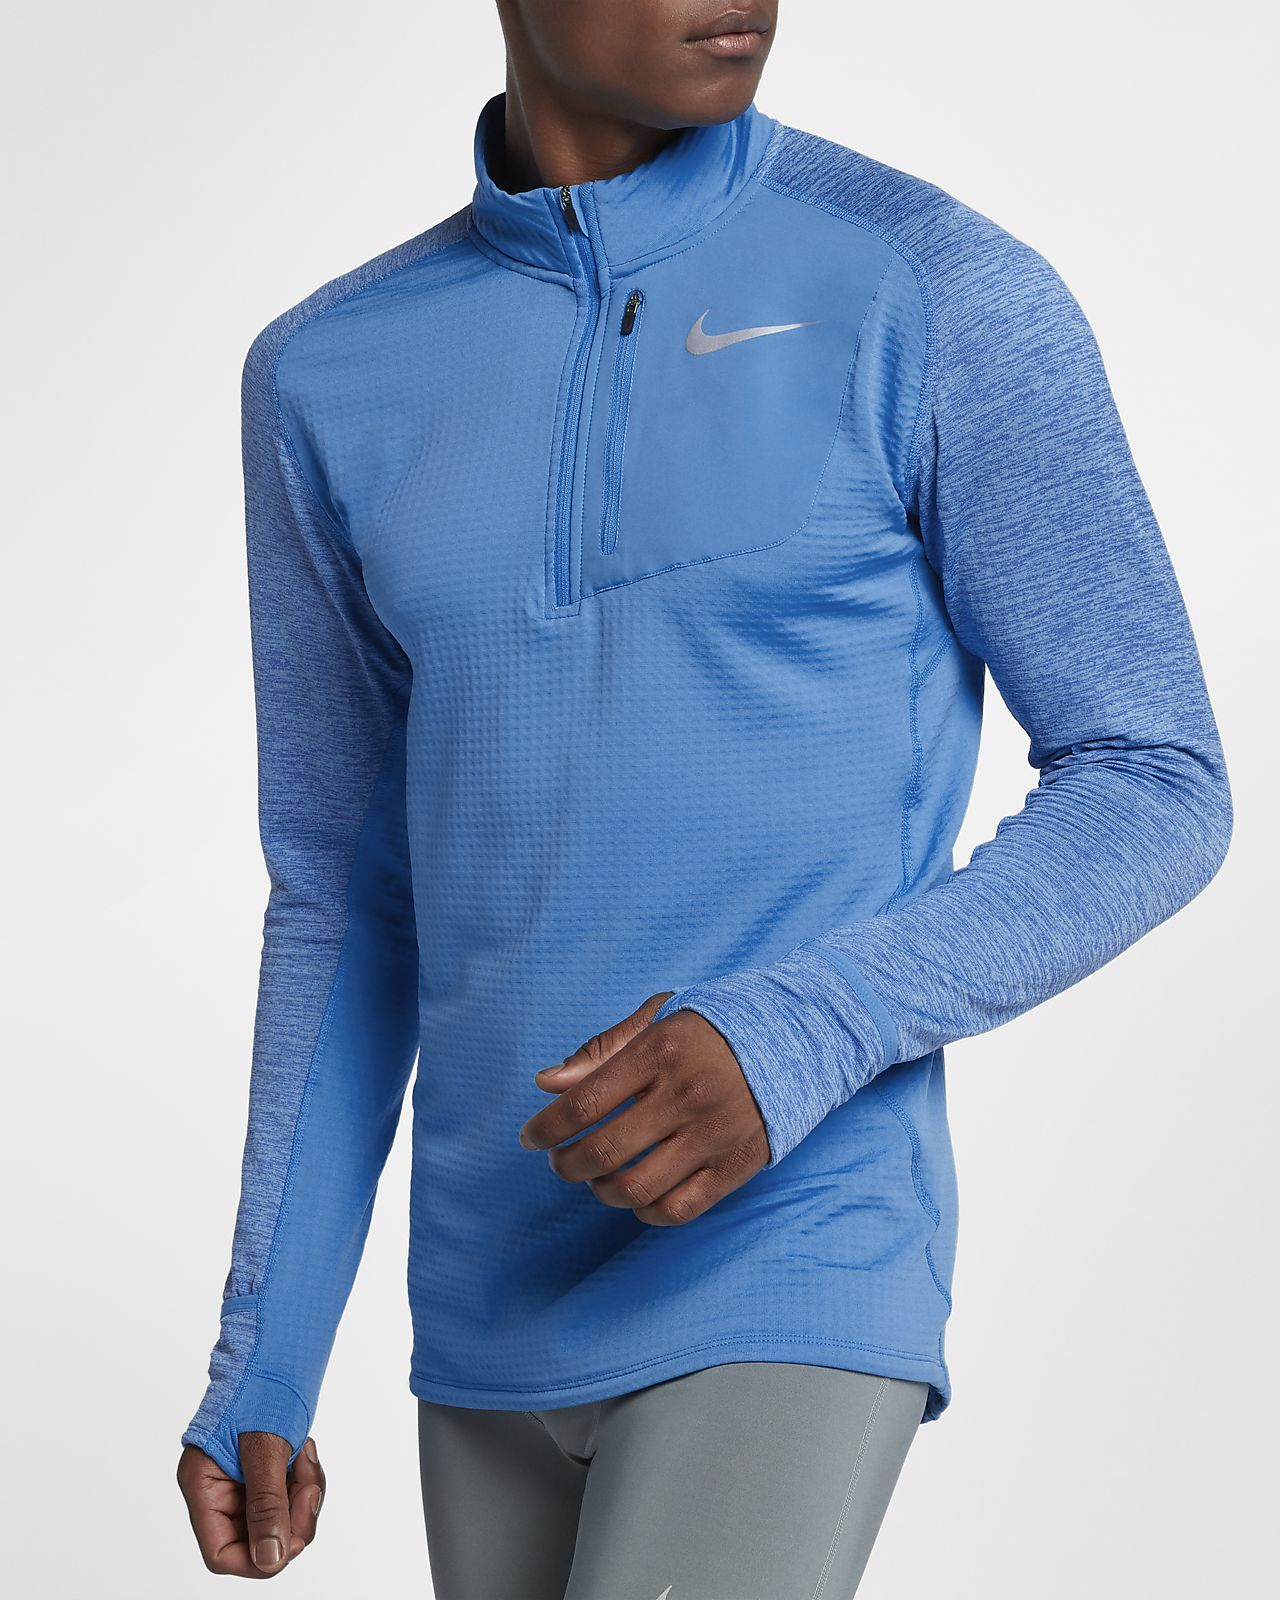 Nike Therma Sphere Element Men's Long Sleeve Half-Zip Running Top - size  small,